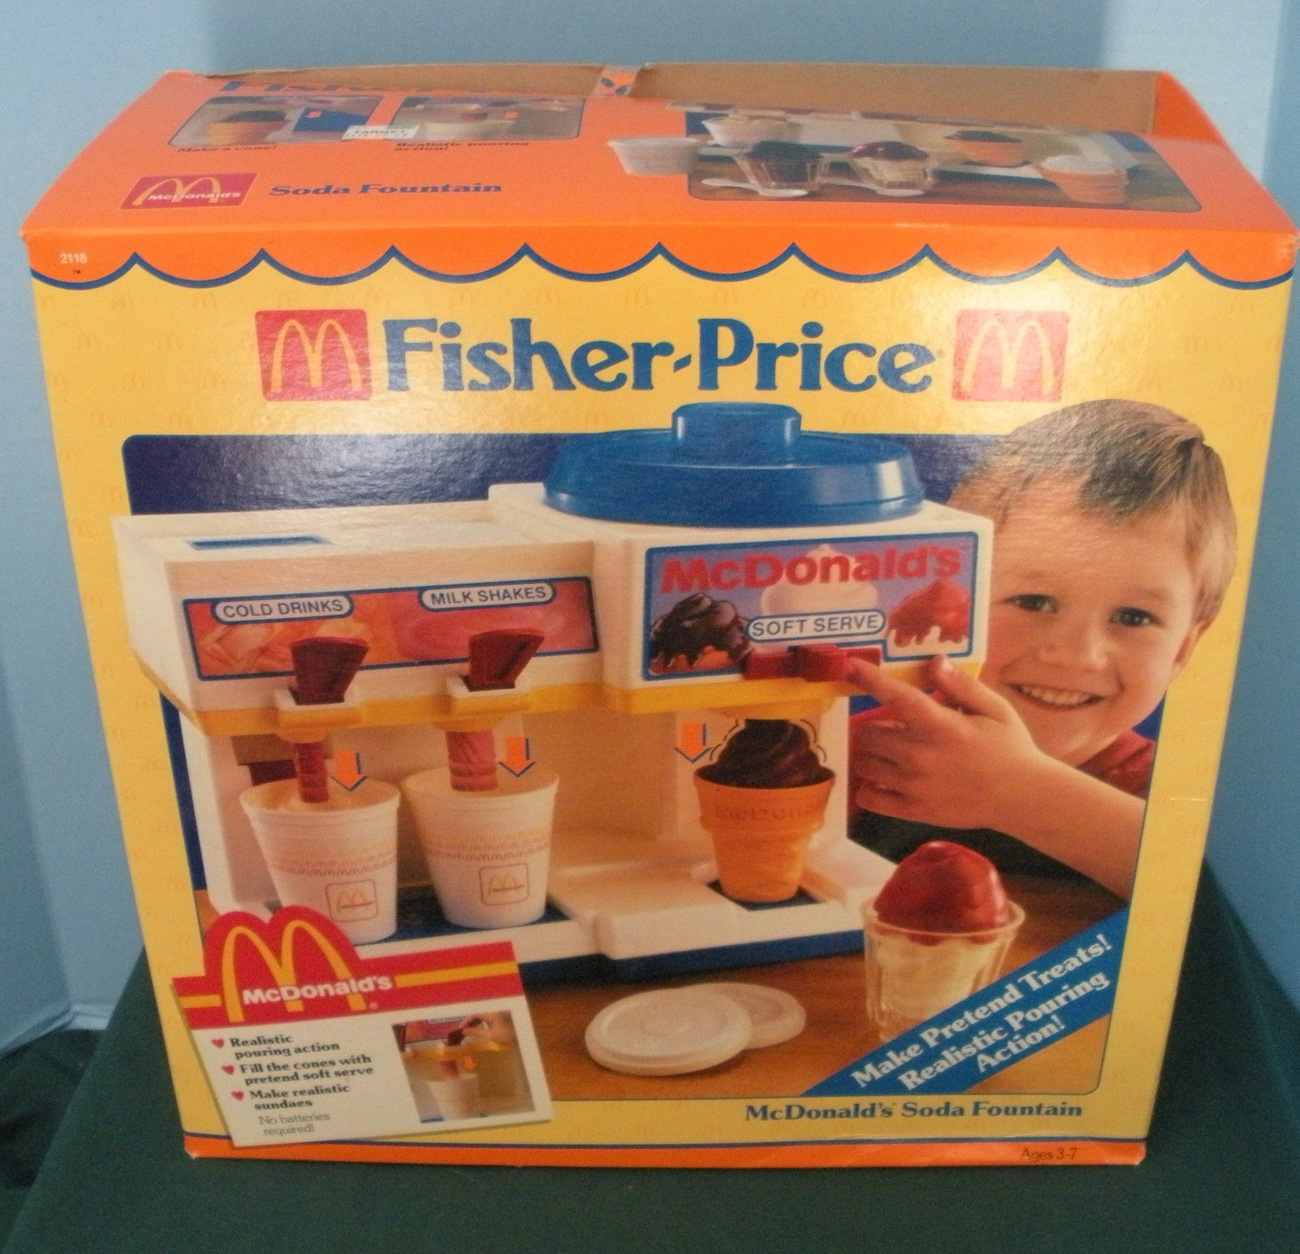 Fisher Price Play Kitchen: Vintage Fisher Price Fun With Food #2118 McDonald's Soda